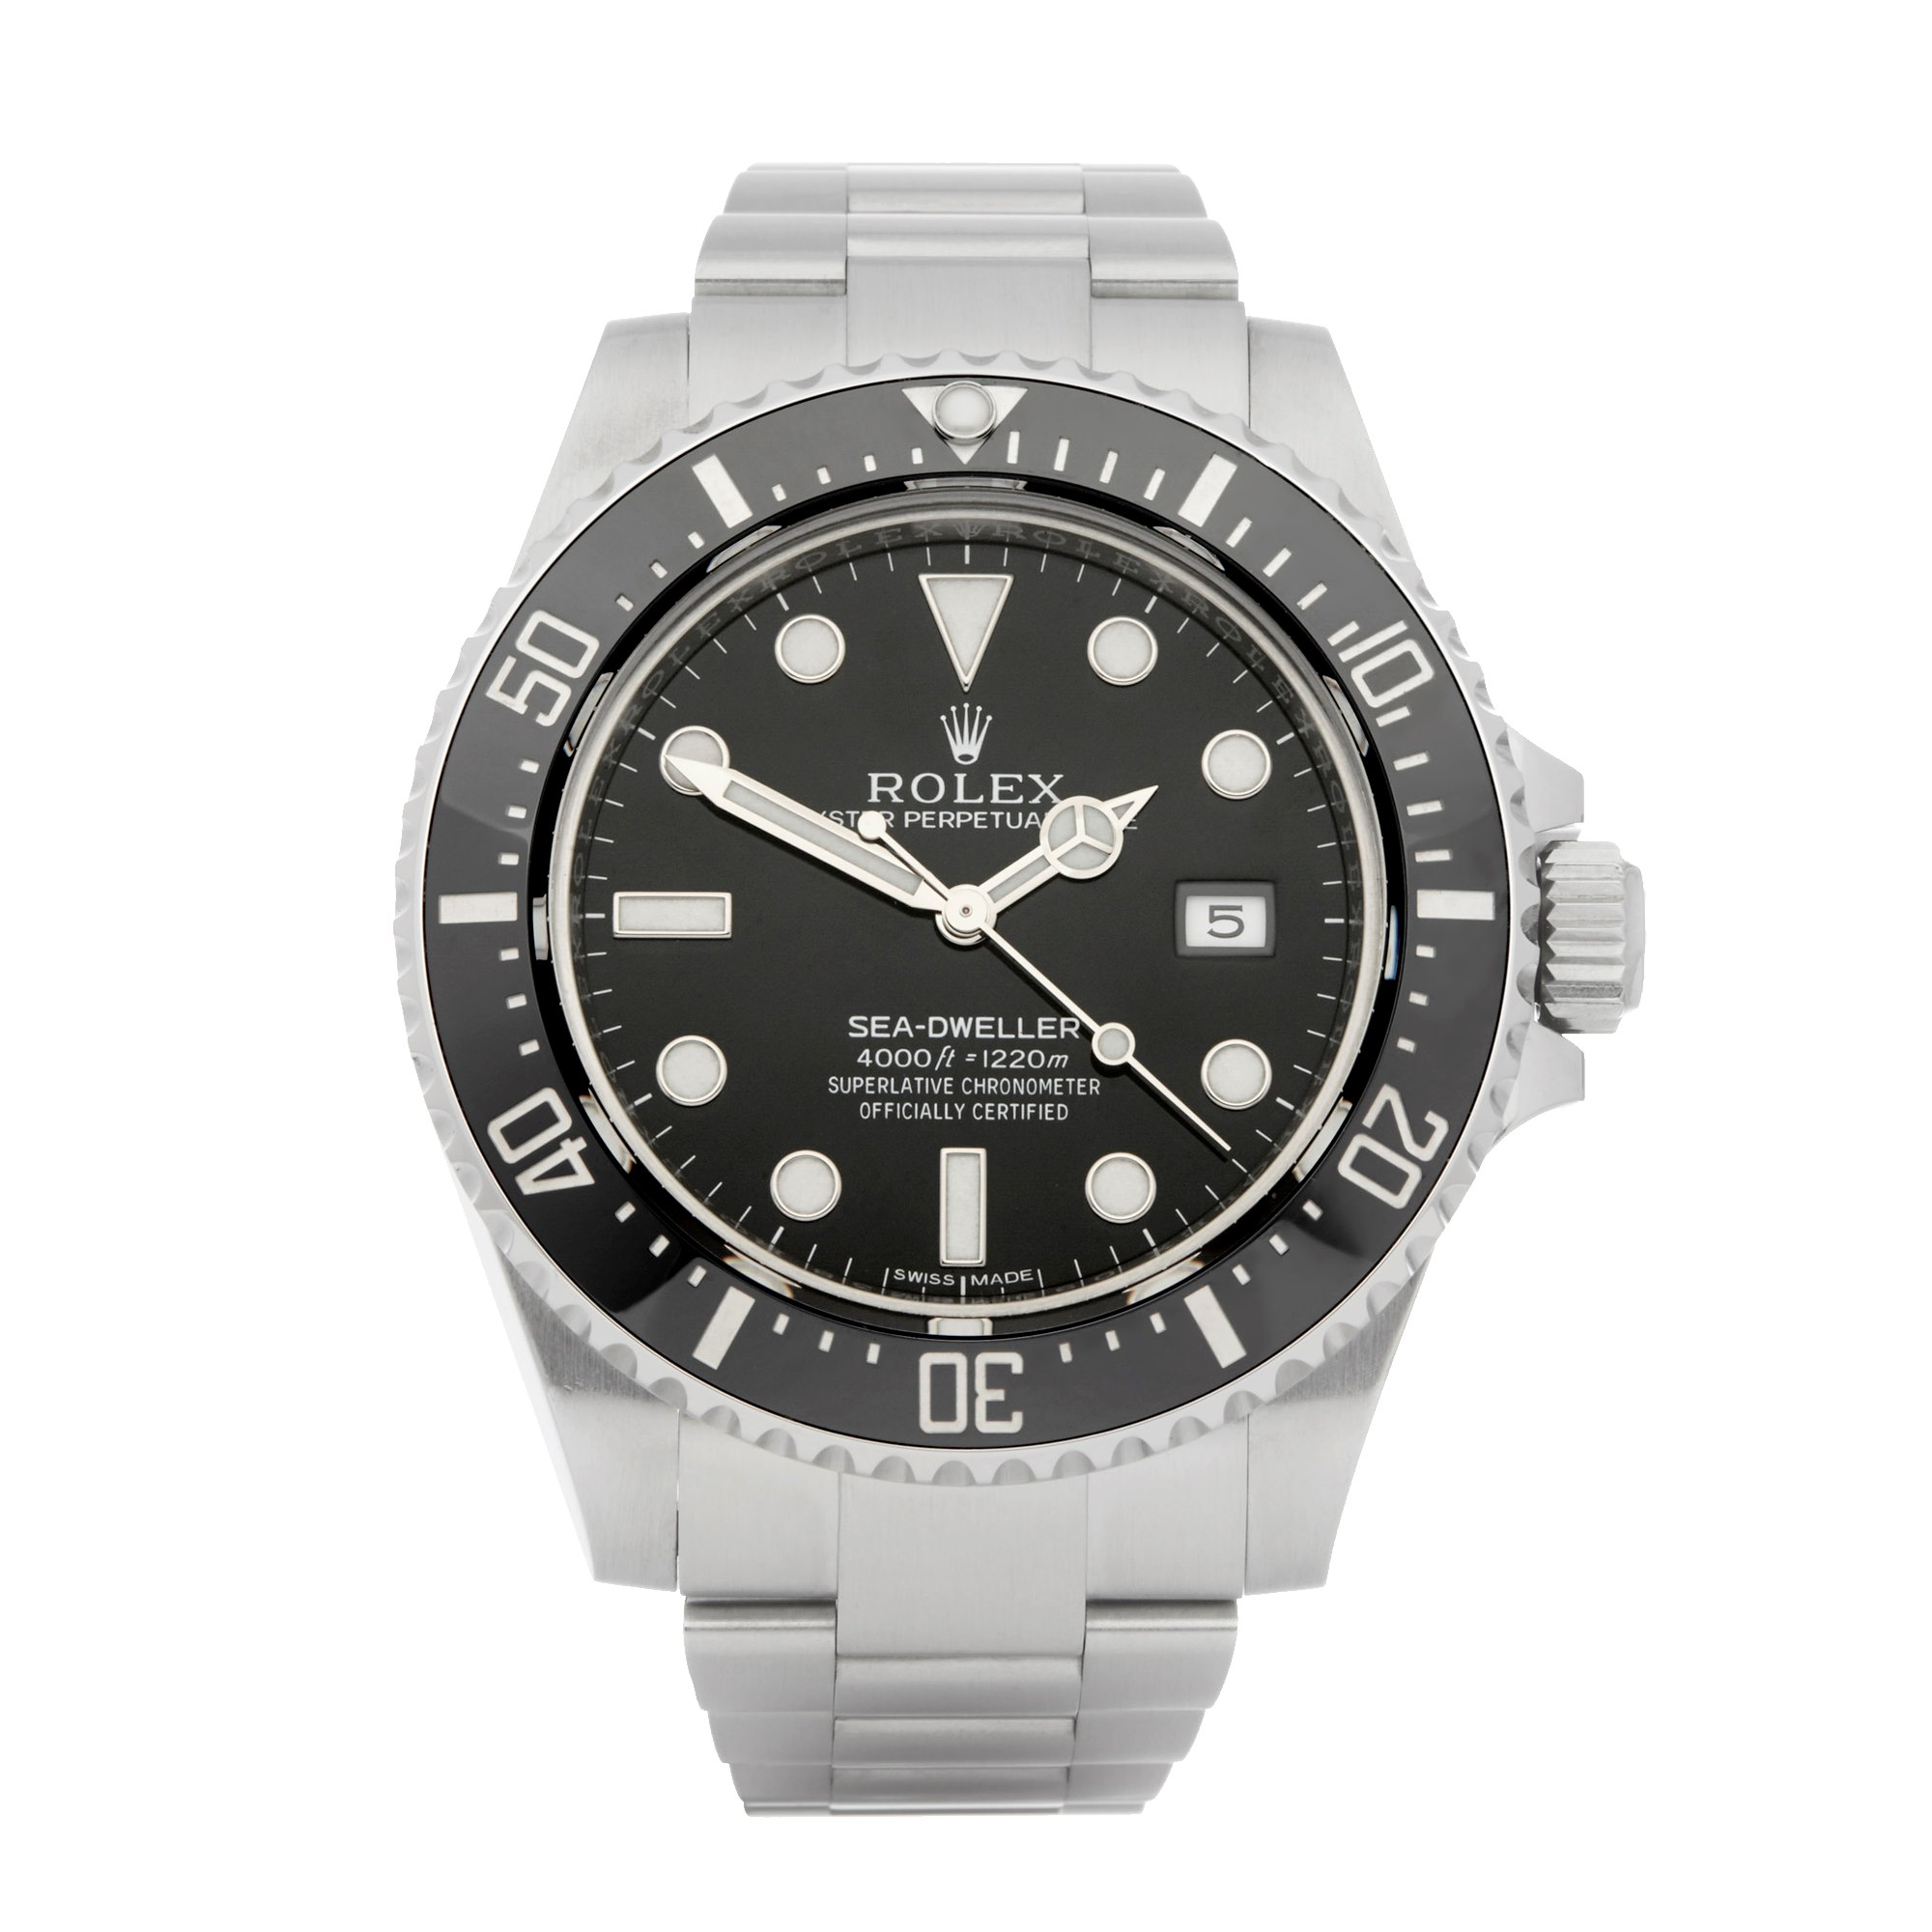 Rolex Sea-Dweller 4000 Stainless Steel 116600